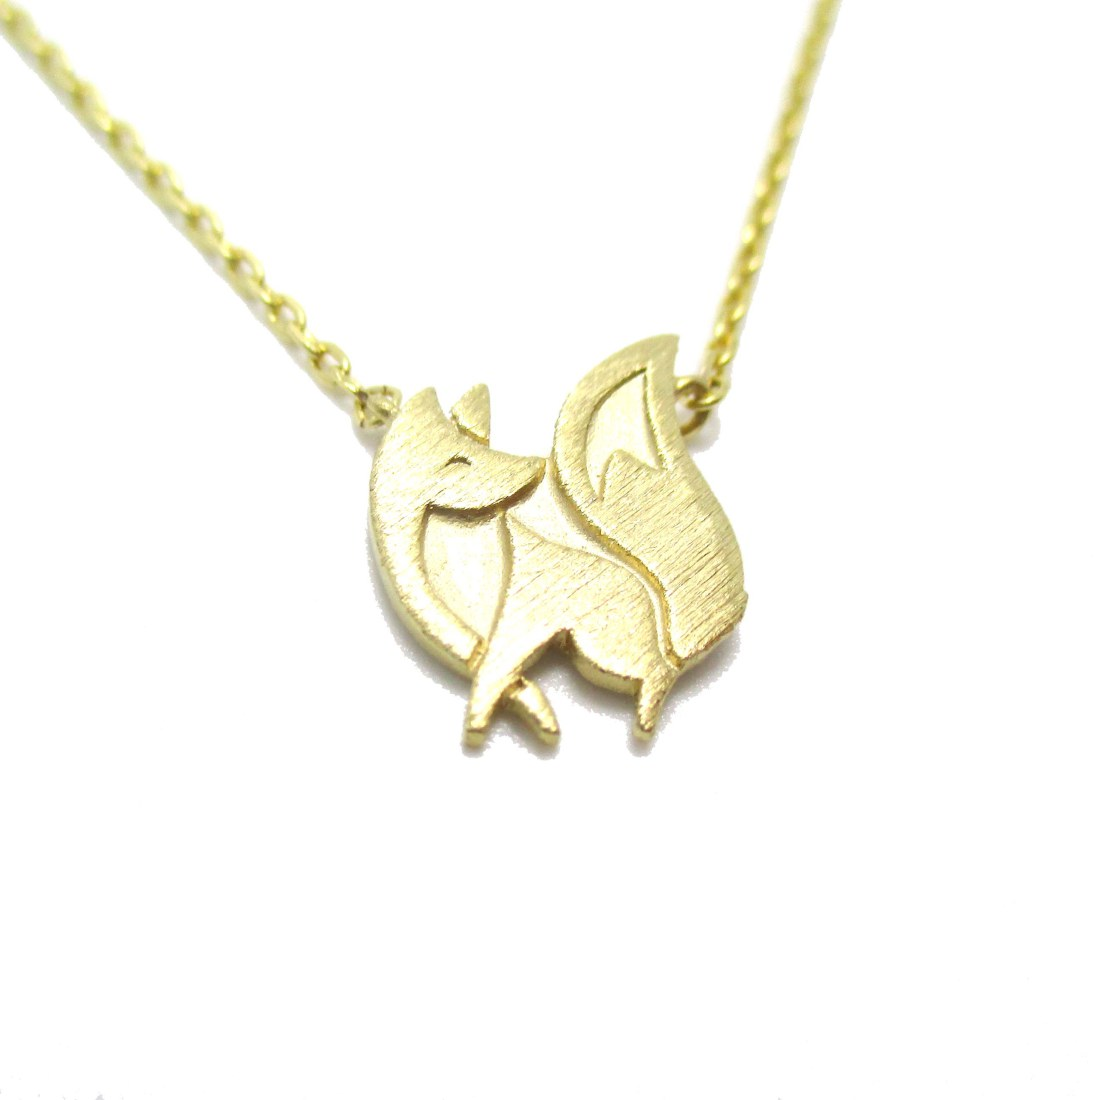 Super Cute Fox Silhouette Shaped Charm Necklace In Gold